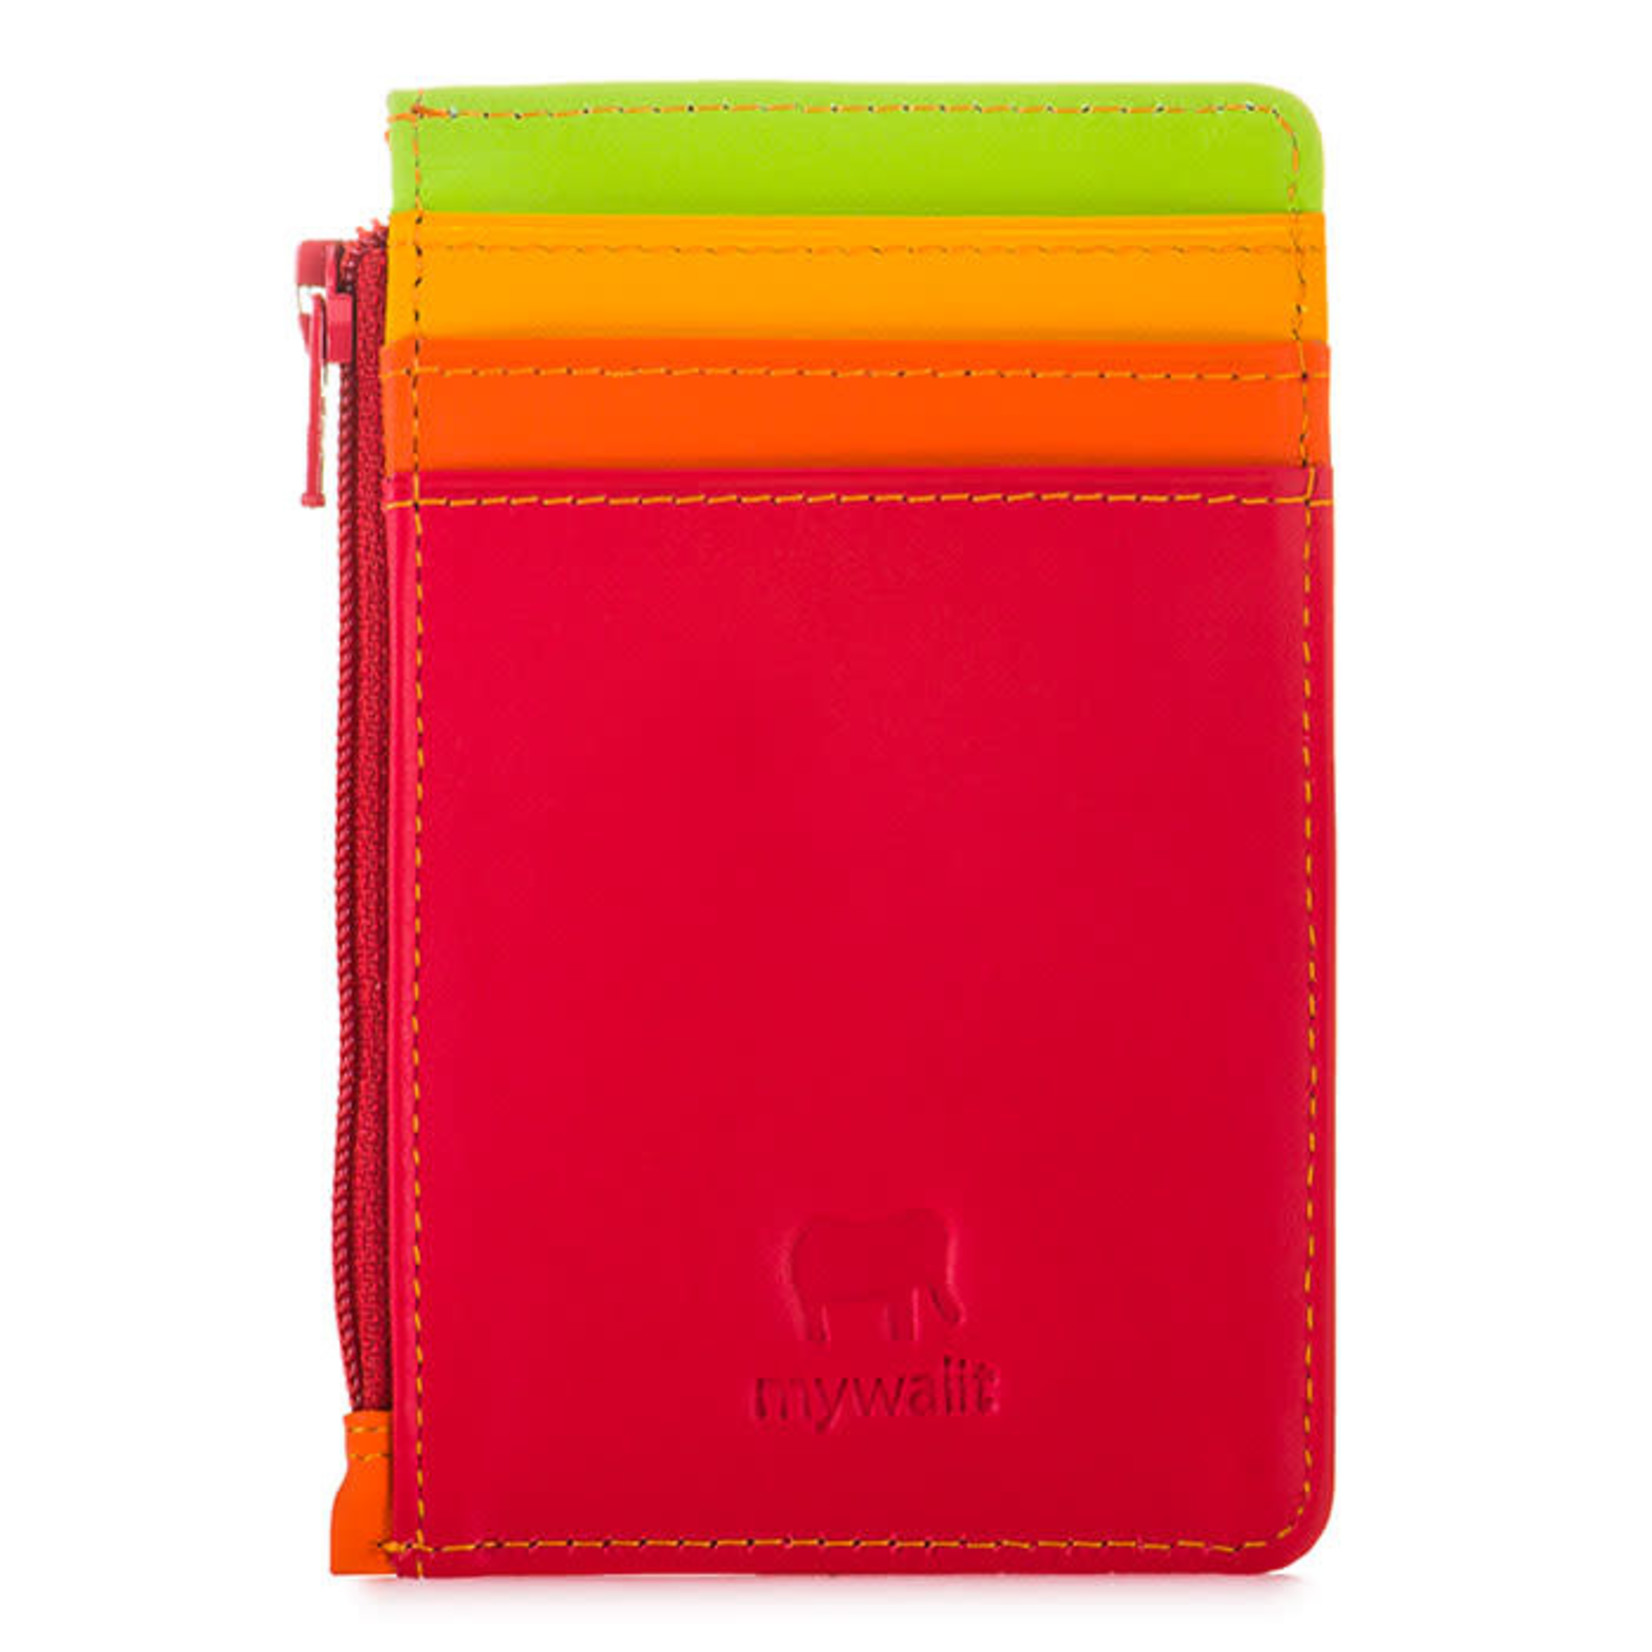 MyWalit Credit Card Holder w/Coin Purse Jamaica